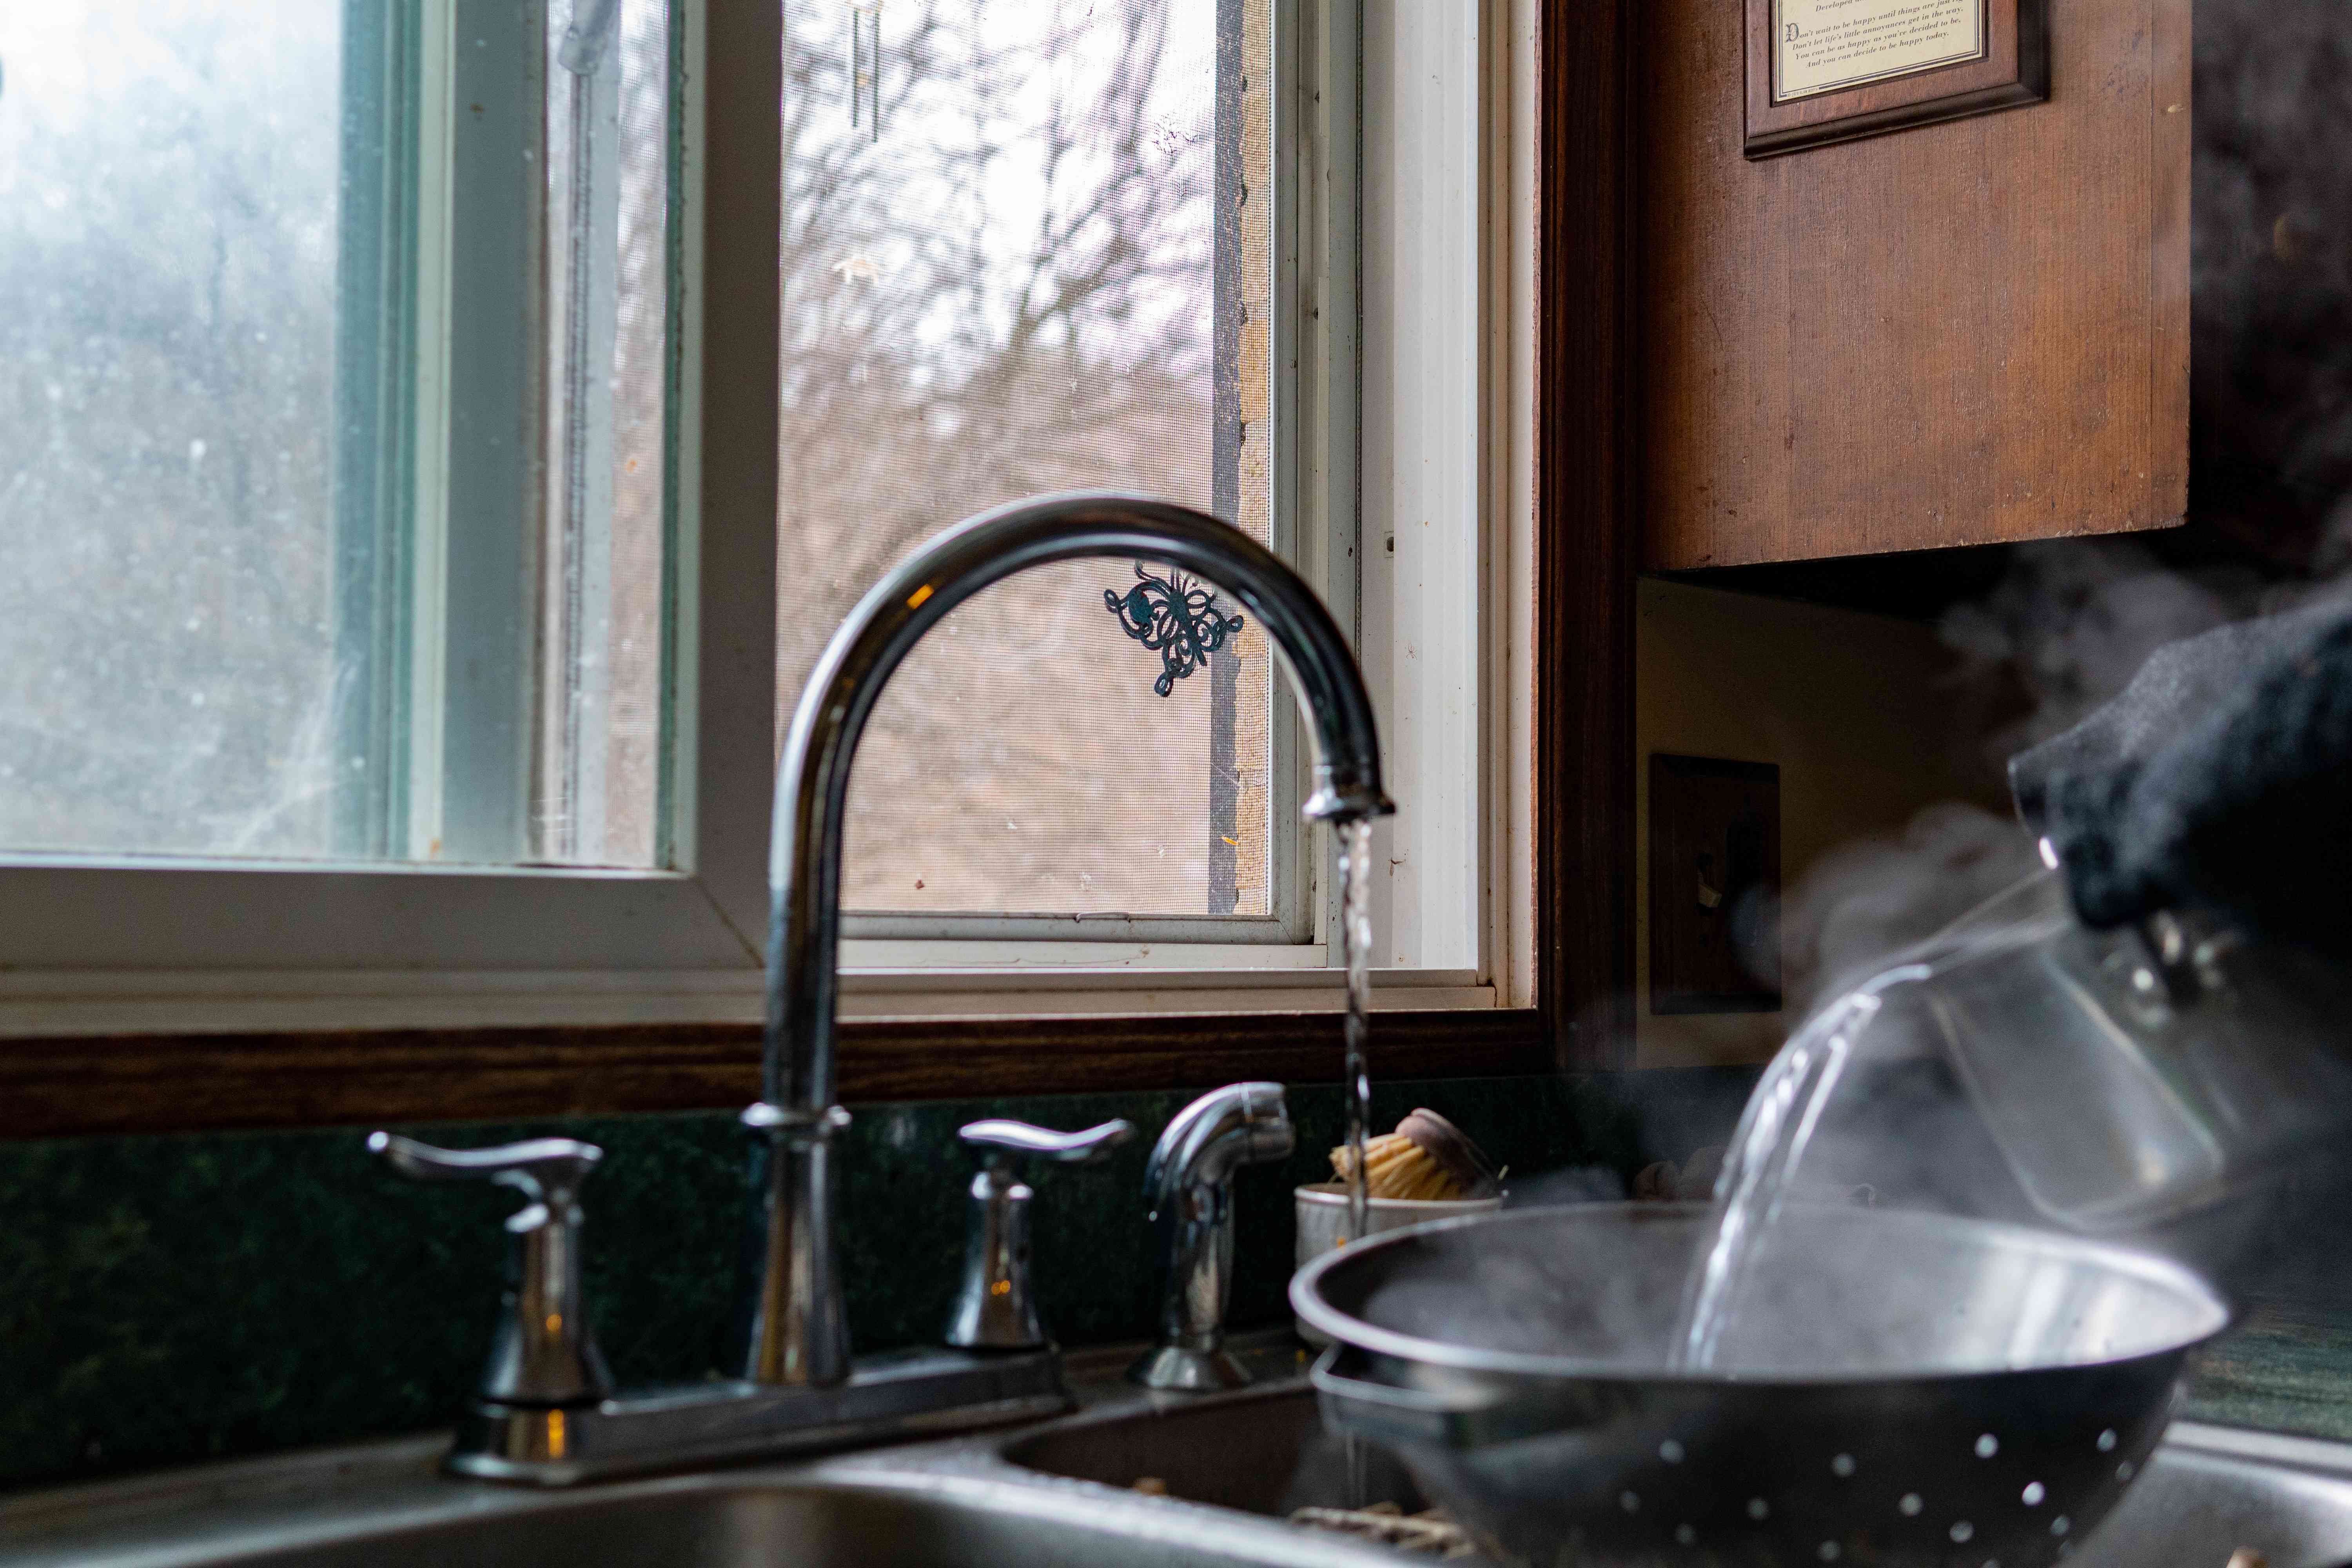 opened window while boiling water in kitchen